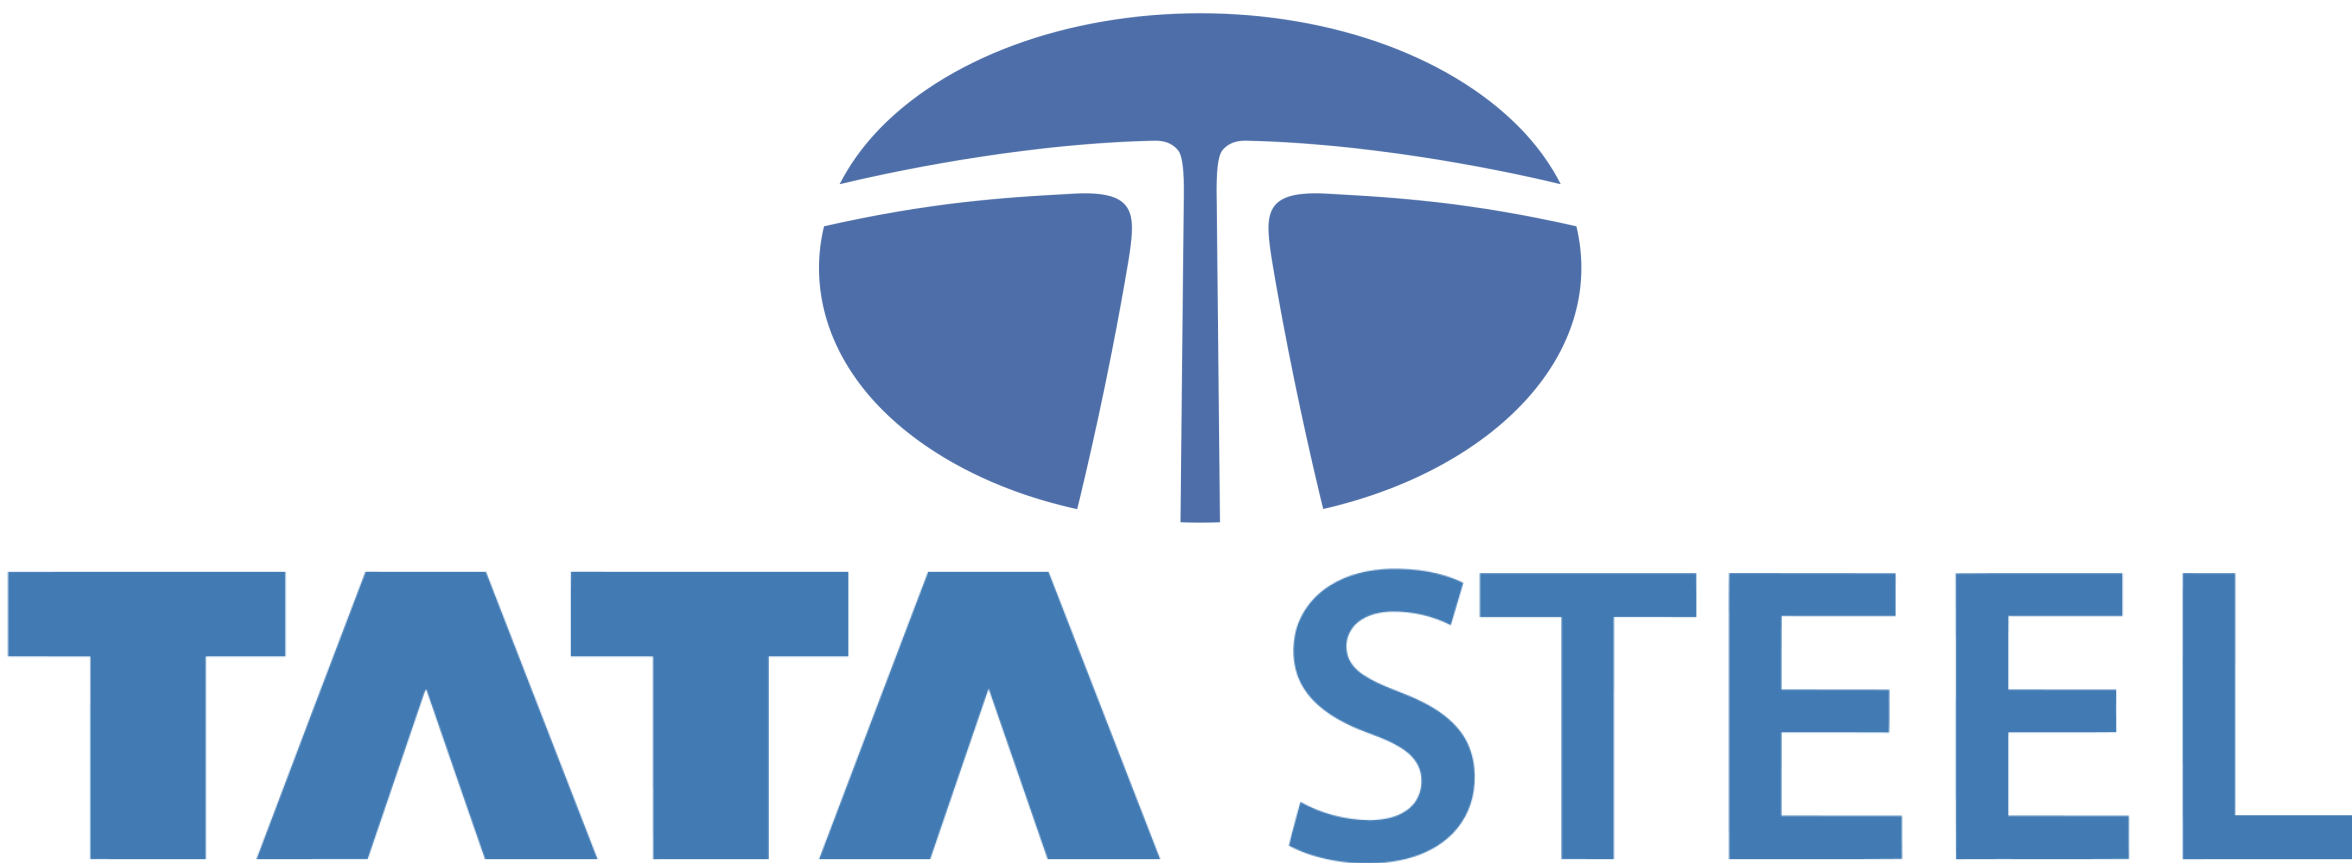 unit 32 business strategy assignment tata steel hnd help unit 32 business strategy assignment tata steel assignment help in uk